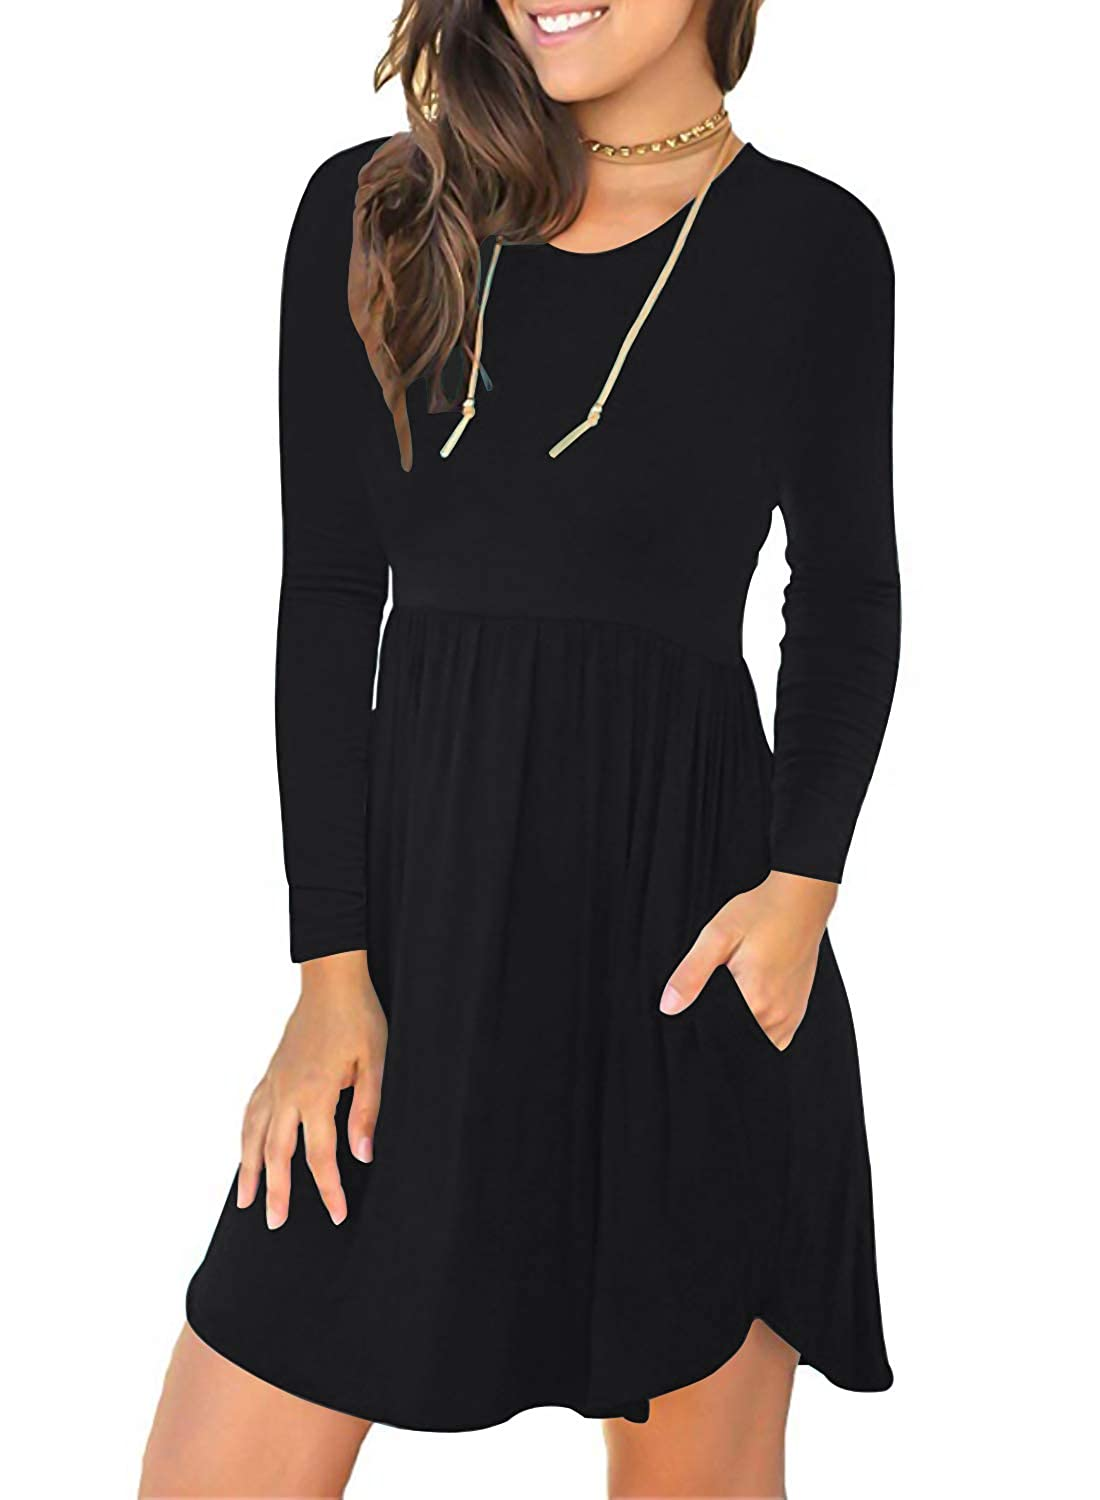 Black HUSKARY Womens Vintage Patchwork Pockets Long Sleeve Swing Casual Party Dress OX165